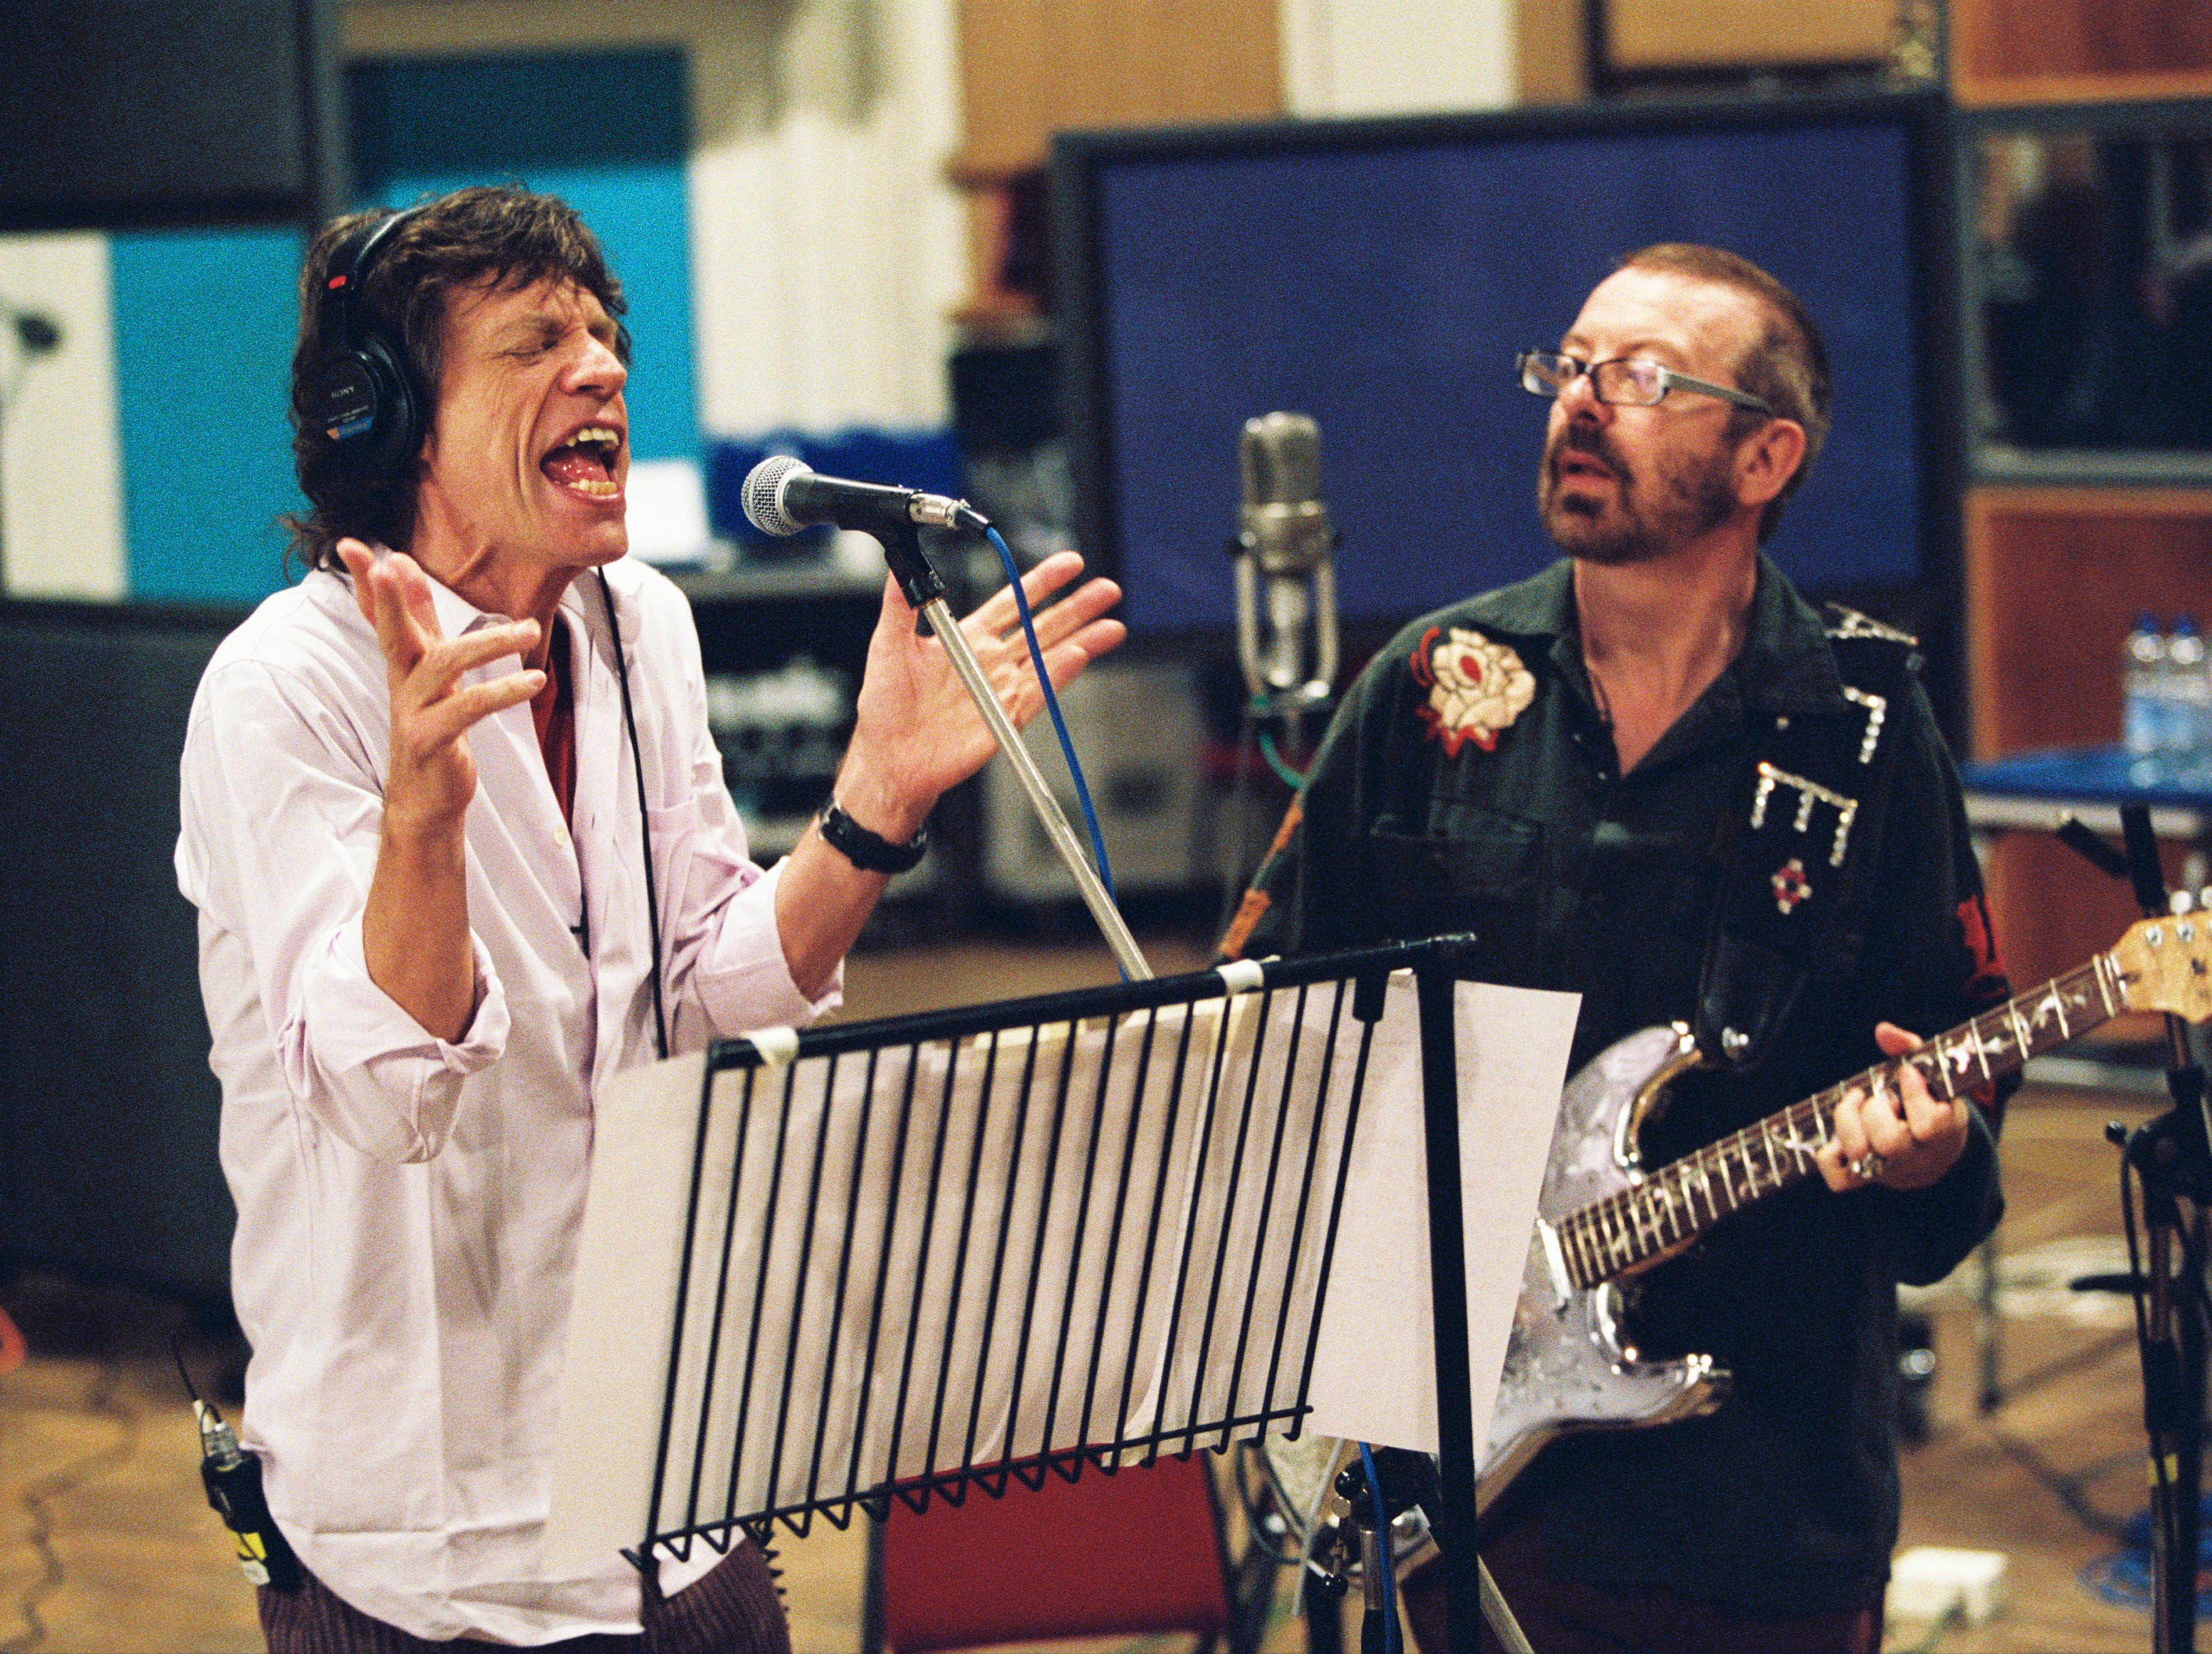 (Left to right) Mick Jagger and Dave Stewart recording the soundtrack for the motion picture Alfie --- DATE TAKEN: Rec'd 10/04  By Claude Gassian   Paramount Pictures        HO      - handout   ORG XMIT: ZX27532